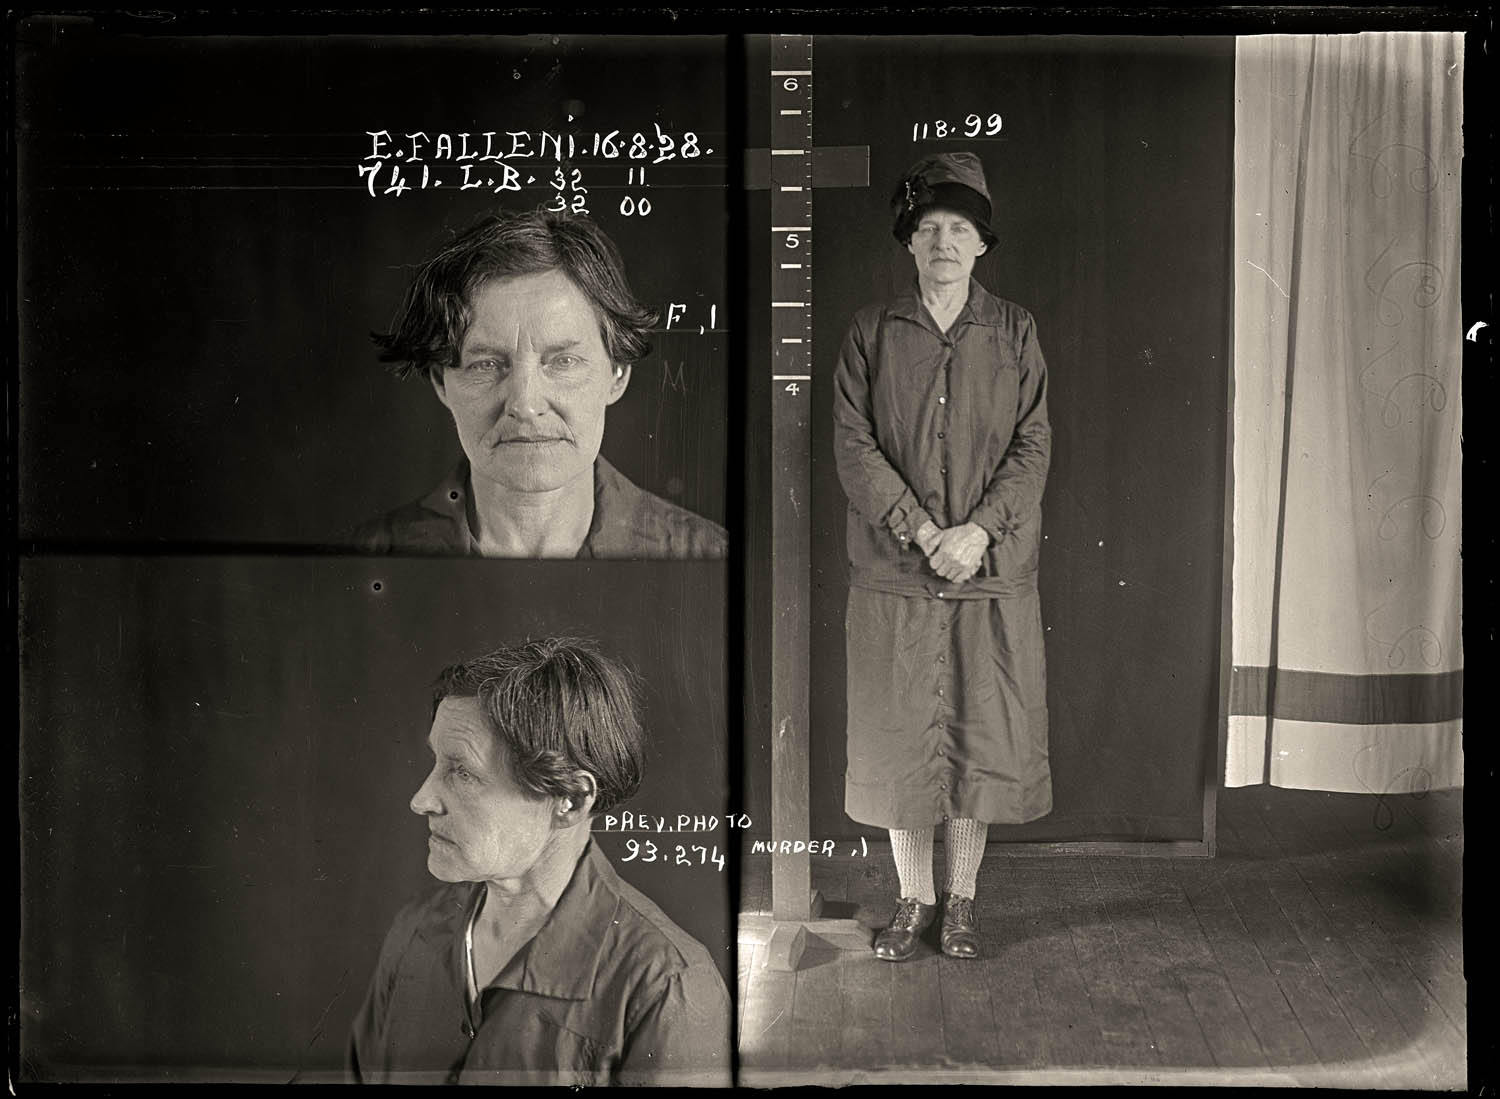 Eugenia Falleni, alias Harry Crawford, criminal record number 741LB, 16 